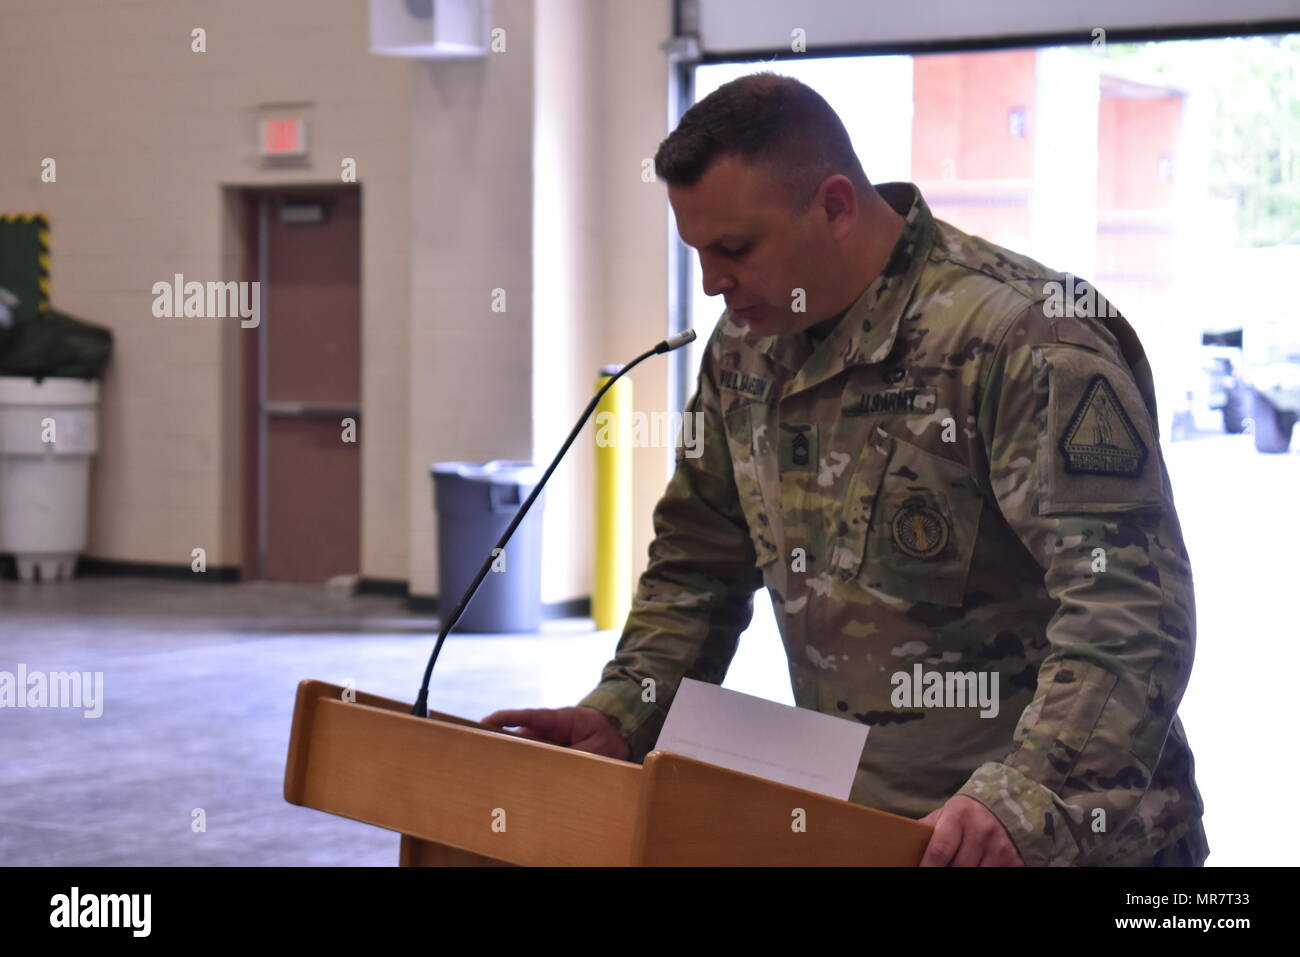 U.S. Army National Guard soldier Master Sgt. Jason Williamson of Bravo Company, Recruiting and Retention Command, reads a script for a graduation ceremony in the Queensbury Armory, Queensbury, N.Y., May 21, 2017. Williamson was preparing for a graduation/Battle Handoff ceremony. (U.S. Army National Guard photo by Pfc. Andrew Valenza) - Stock Image